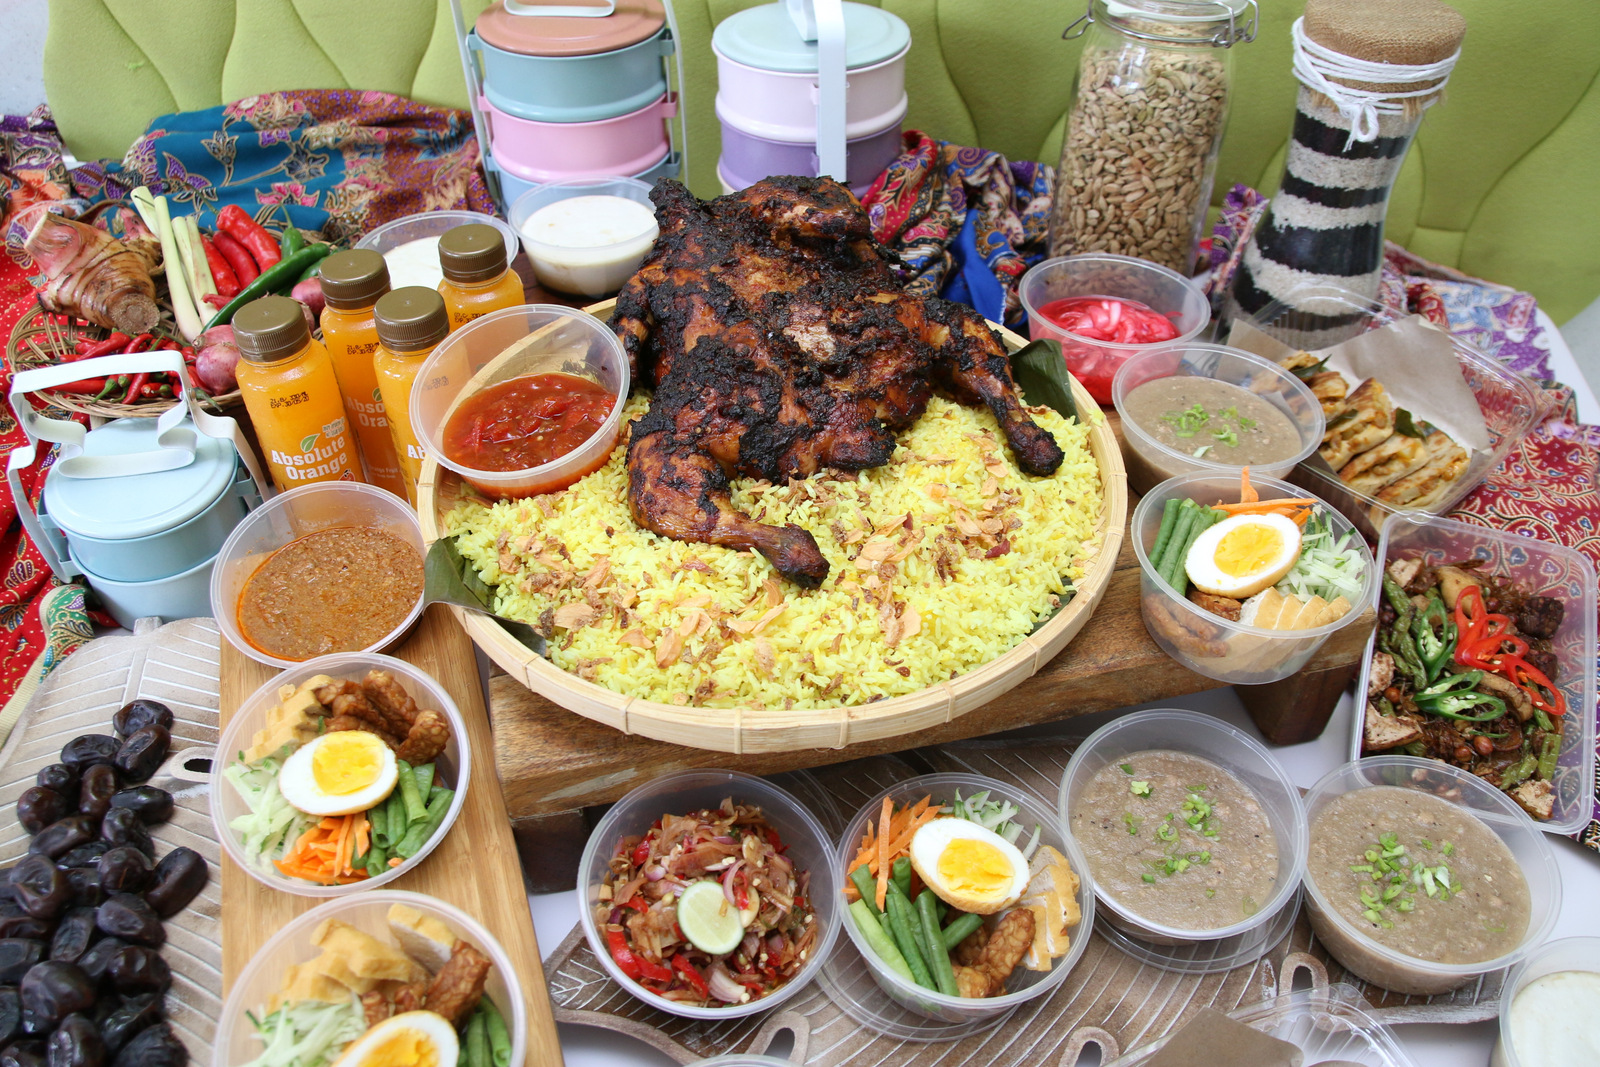 aloft kuala lumpur sentral: makan yuk with nook's takeaway sets of indonesian delights